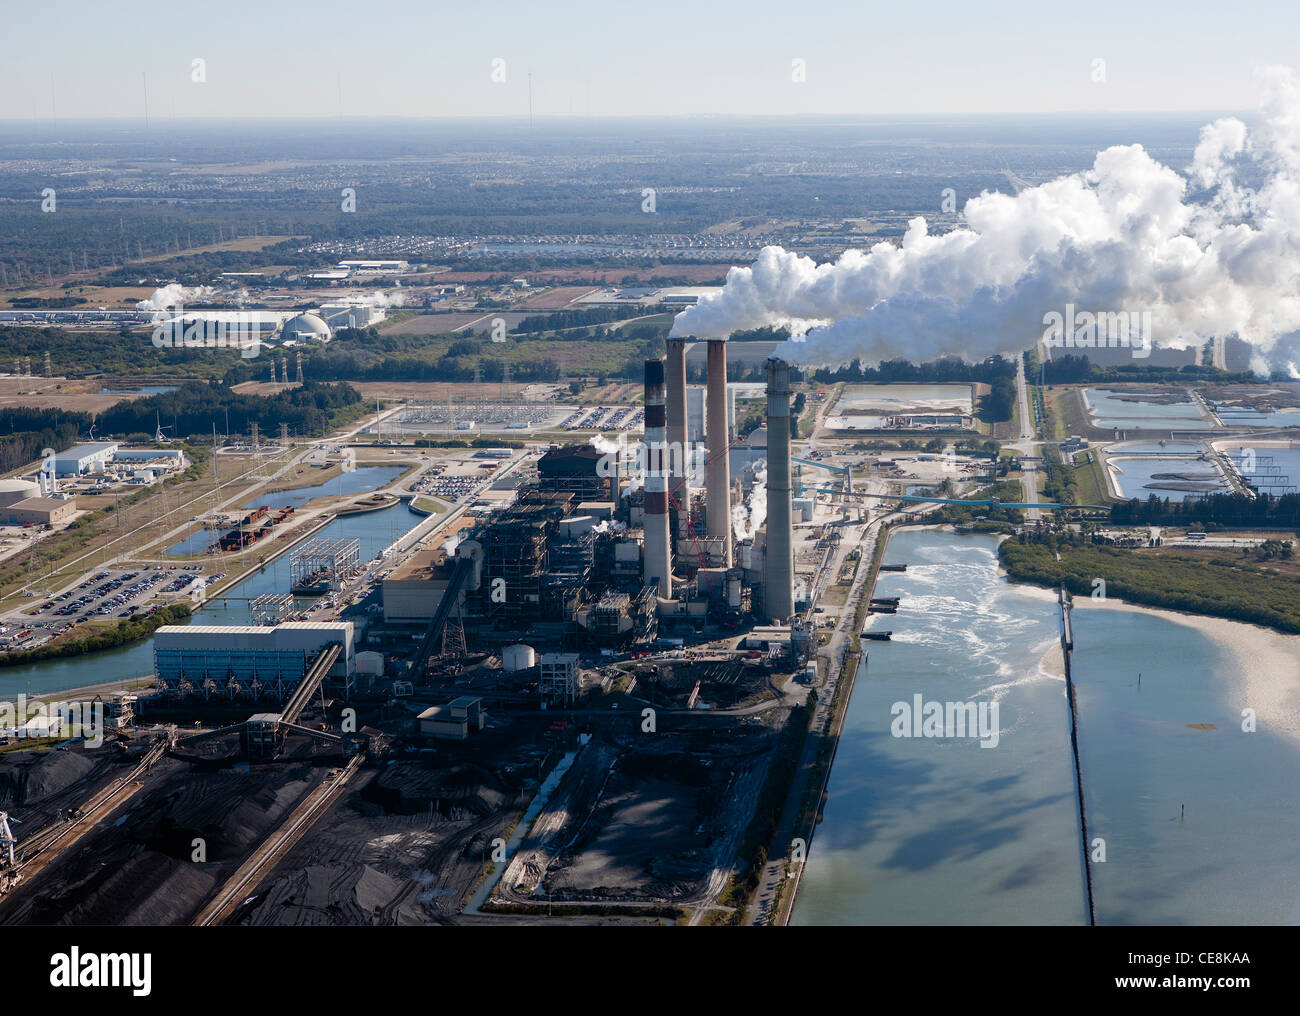 aerial photograph Big Bend Power Station Tampa, Florida - Stock Image